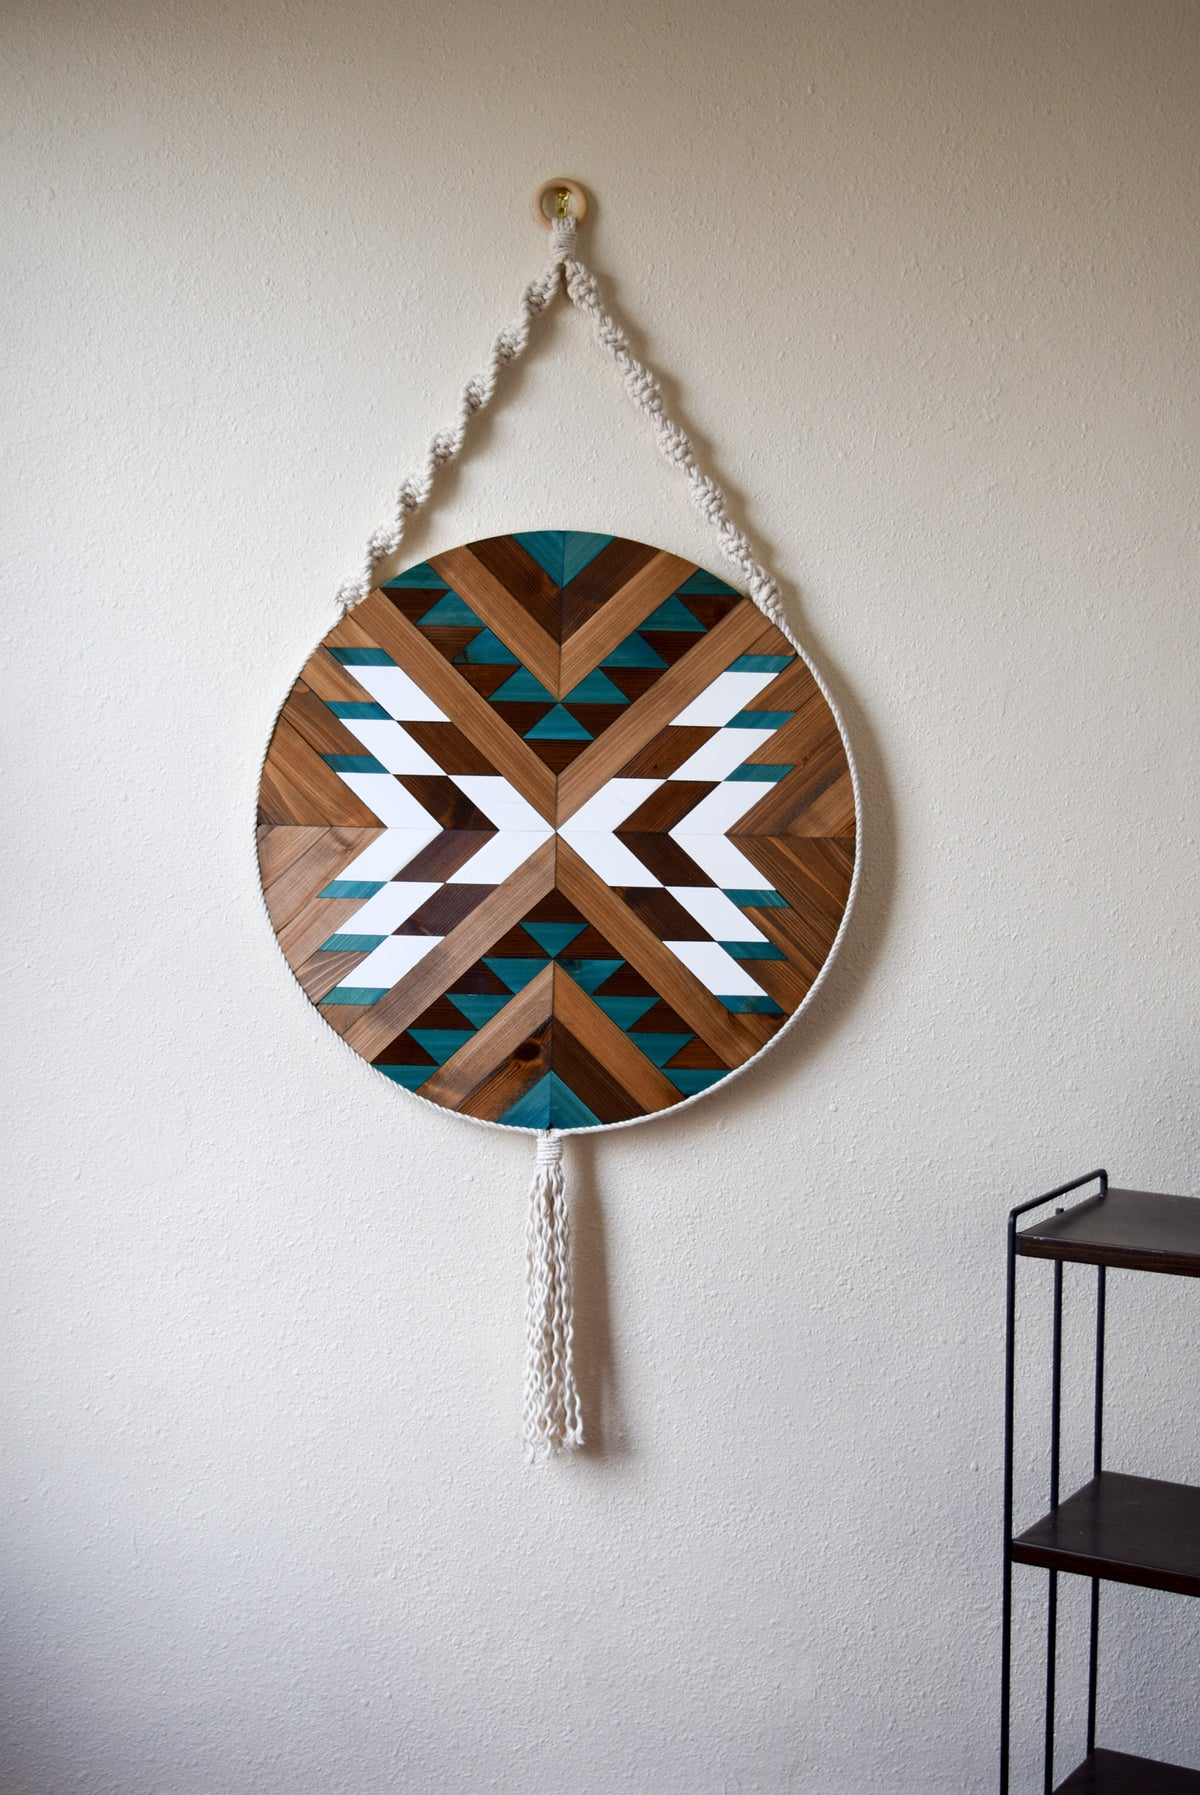 PUEBLO Wood Wall Art - Macrame Wall Hanging - Boho Wood Art - Round Wooden Wall Art - Modern Wood Art - Round Fiber Art - Bohemian Decor